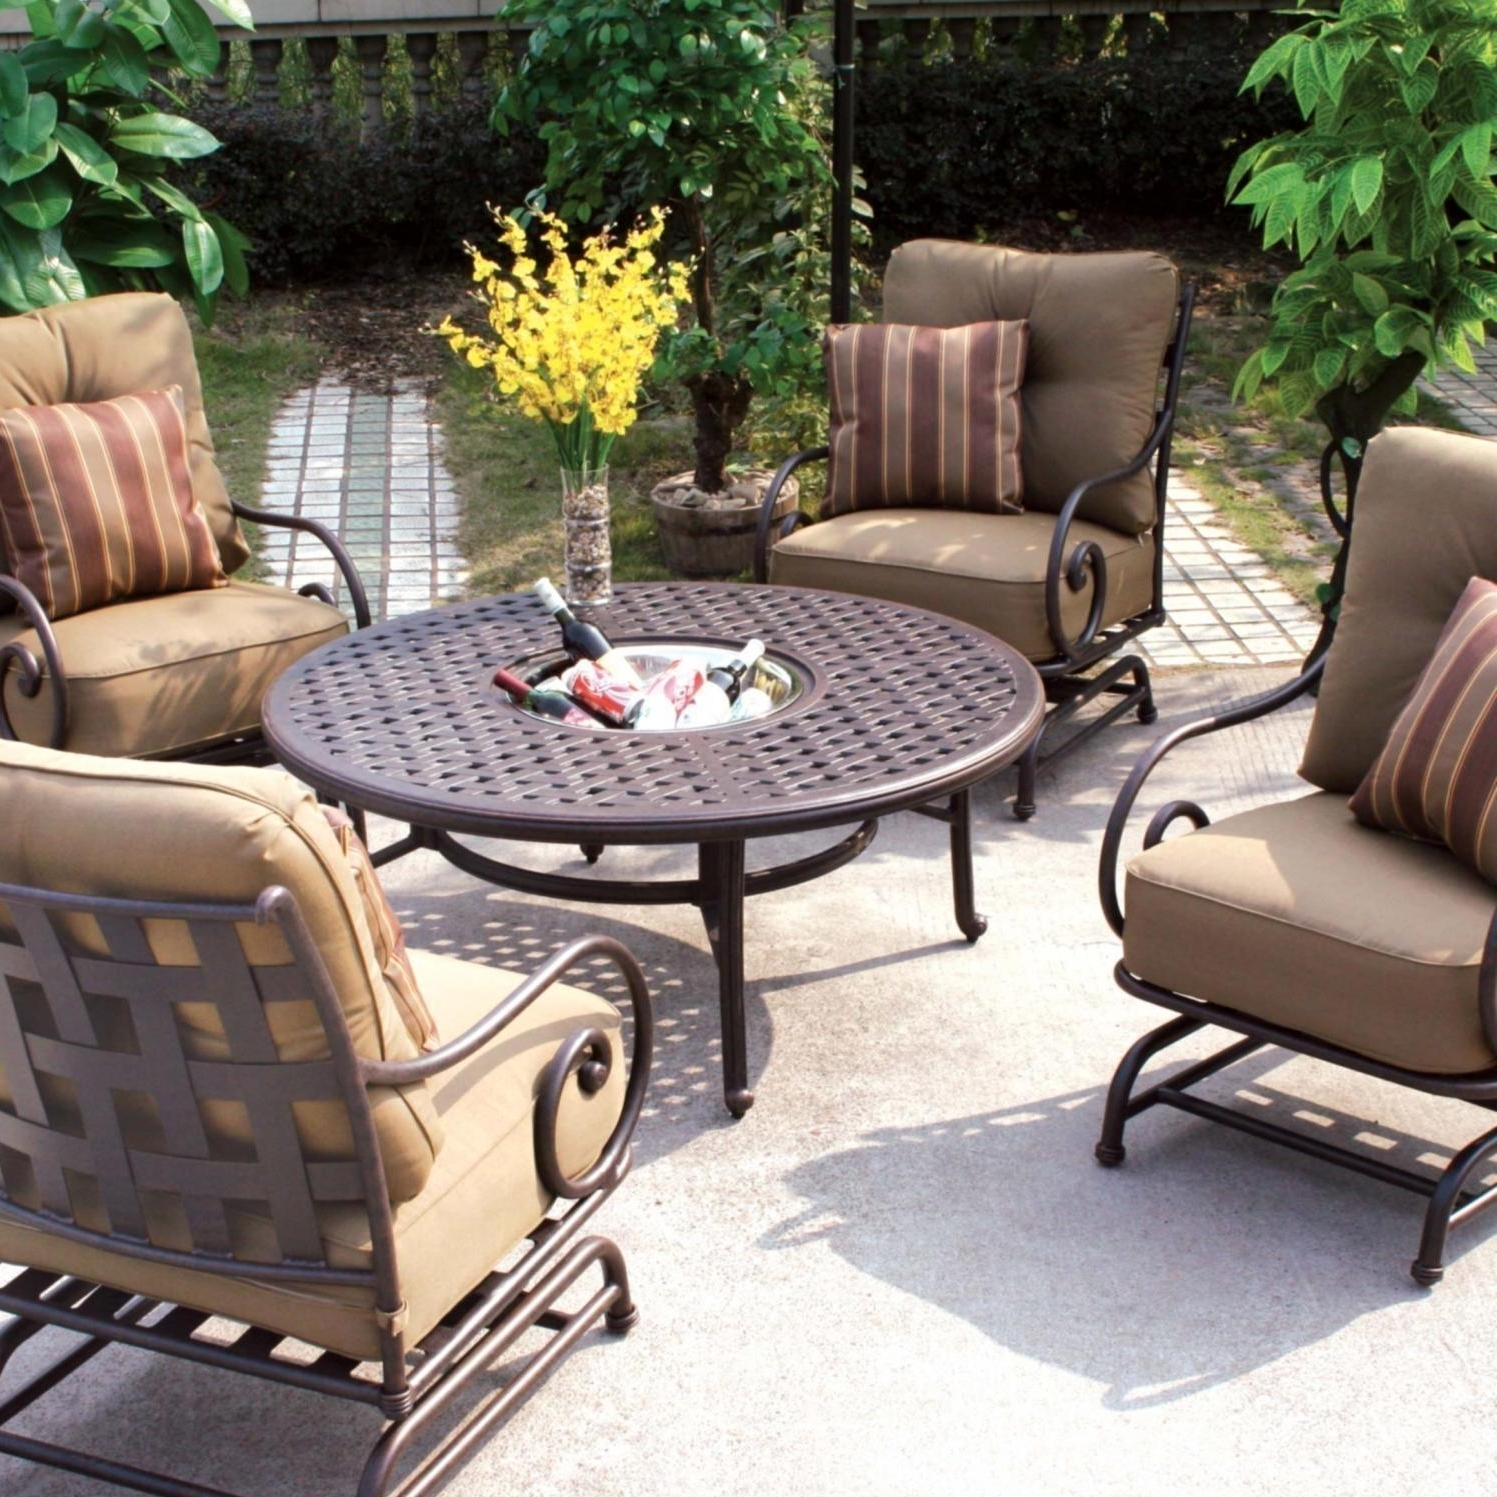 Most Popular Superb Outdoor Furniture Conversation Sets Patio Clearance Wood My With Regard To Wood Patio Furniture Conversation Sets (View 13 of 20)